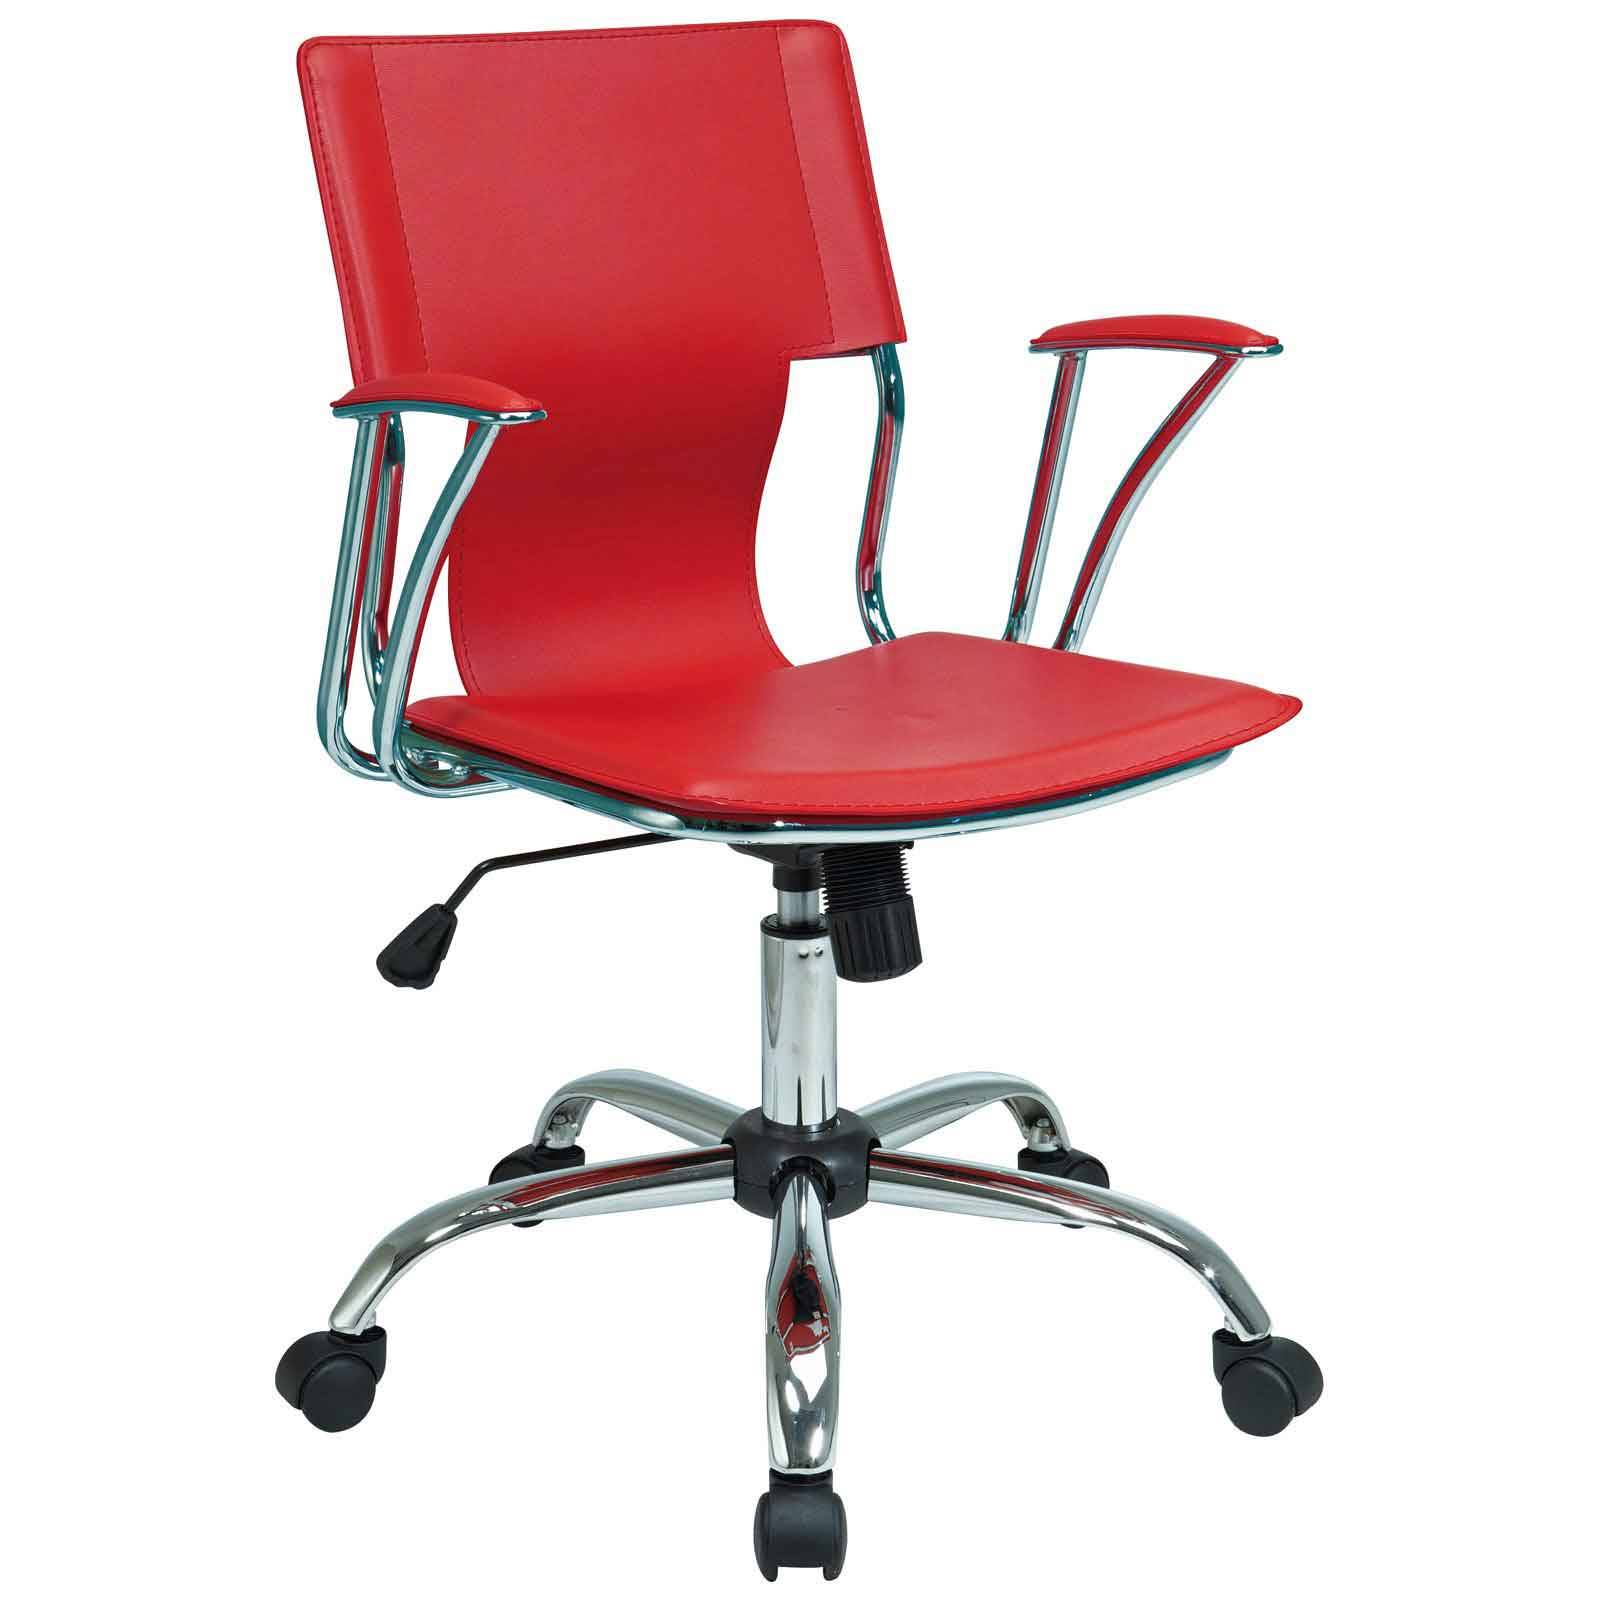 Stylish Chairs Stylish Office Chairs For Home Office